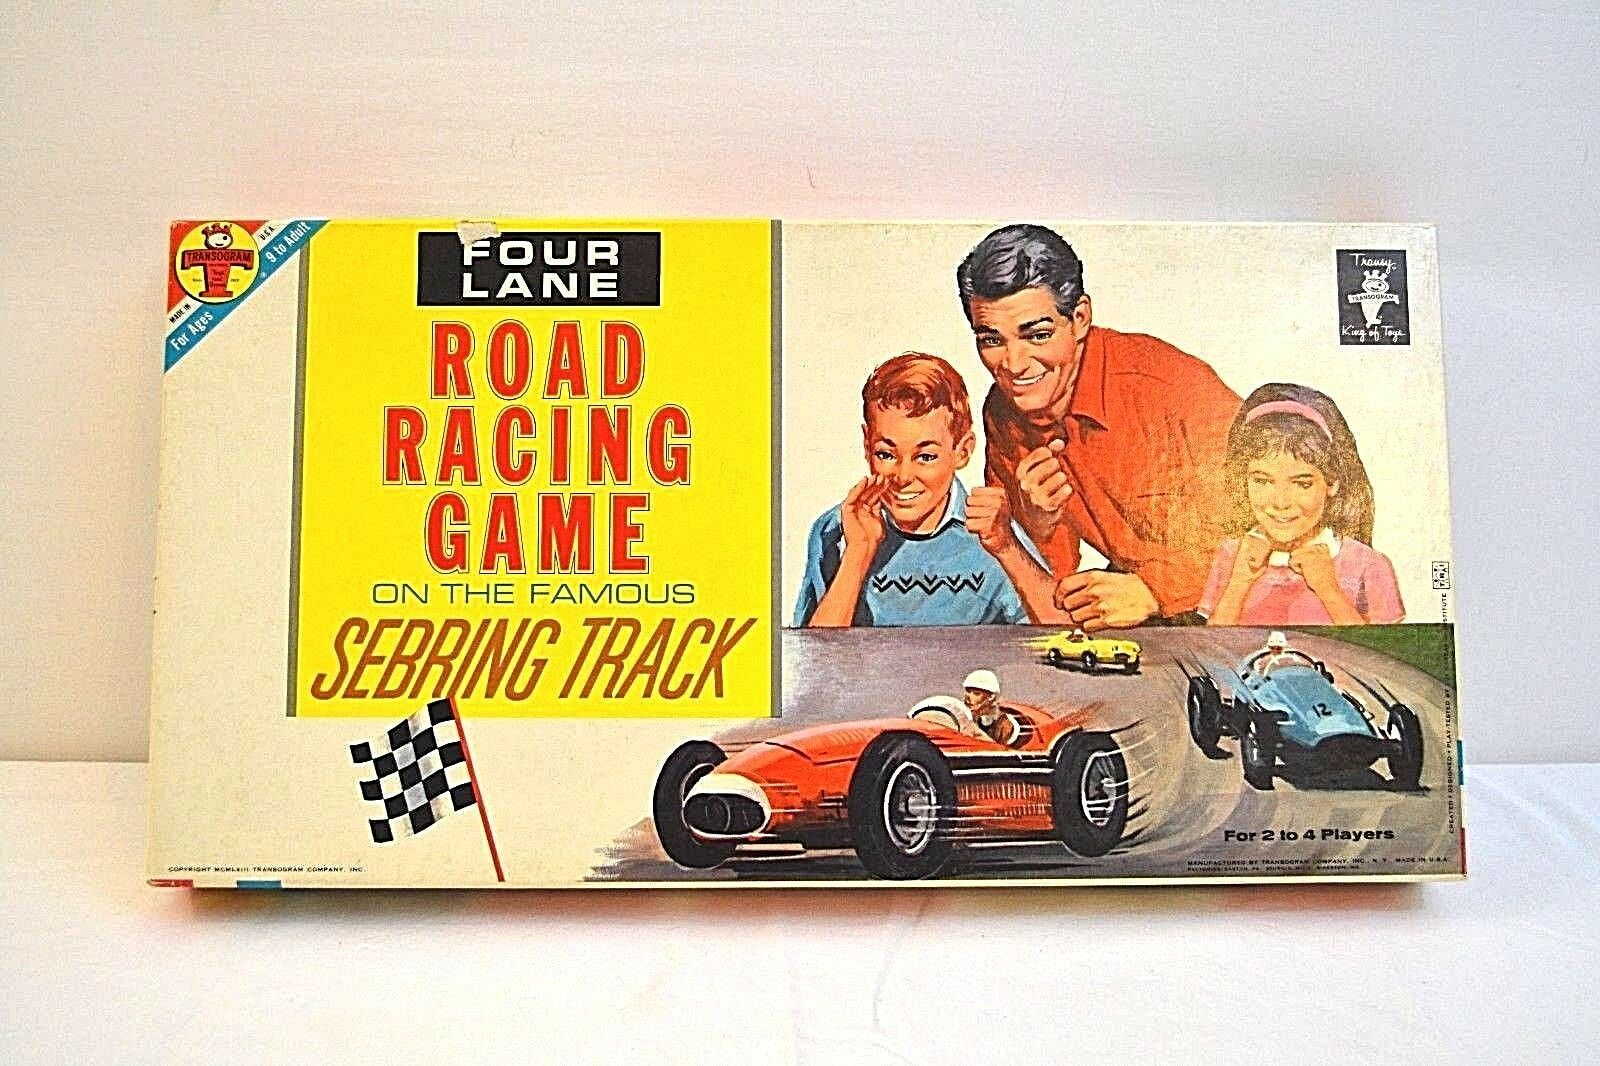 Transogram Rare Four Lane Road Racing Game on the Famous Sebring Track 1963